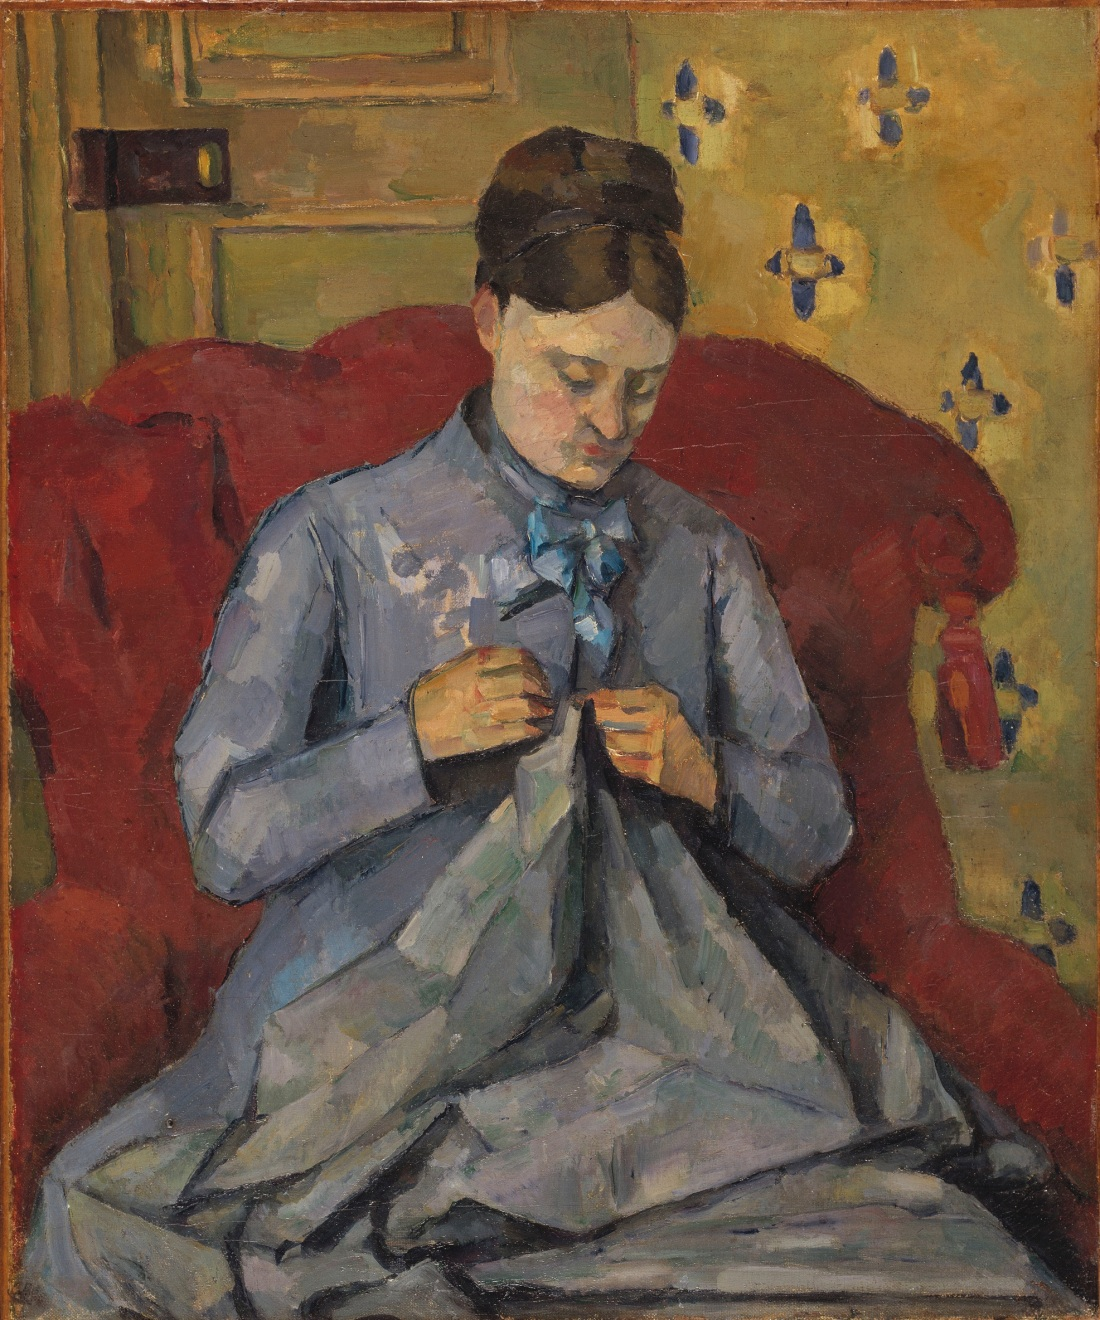 Paul Cezanne, Madame Cezanne Sewing, ca. 1877. Collection of the Nationalmuseum, Stockholm.